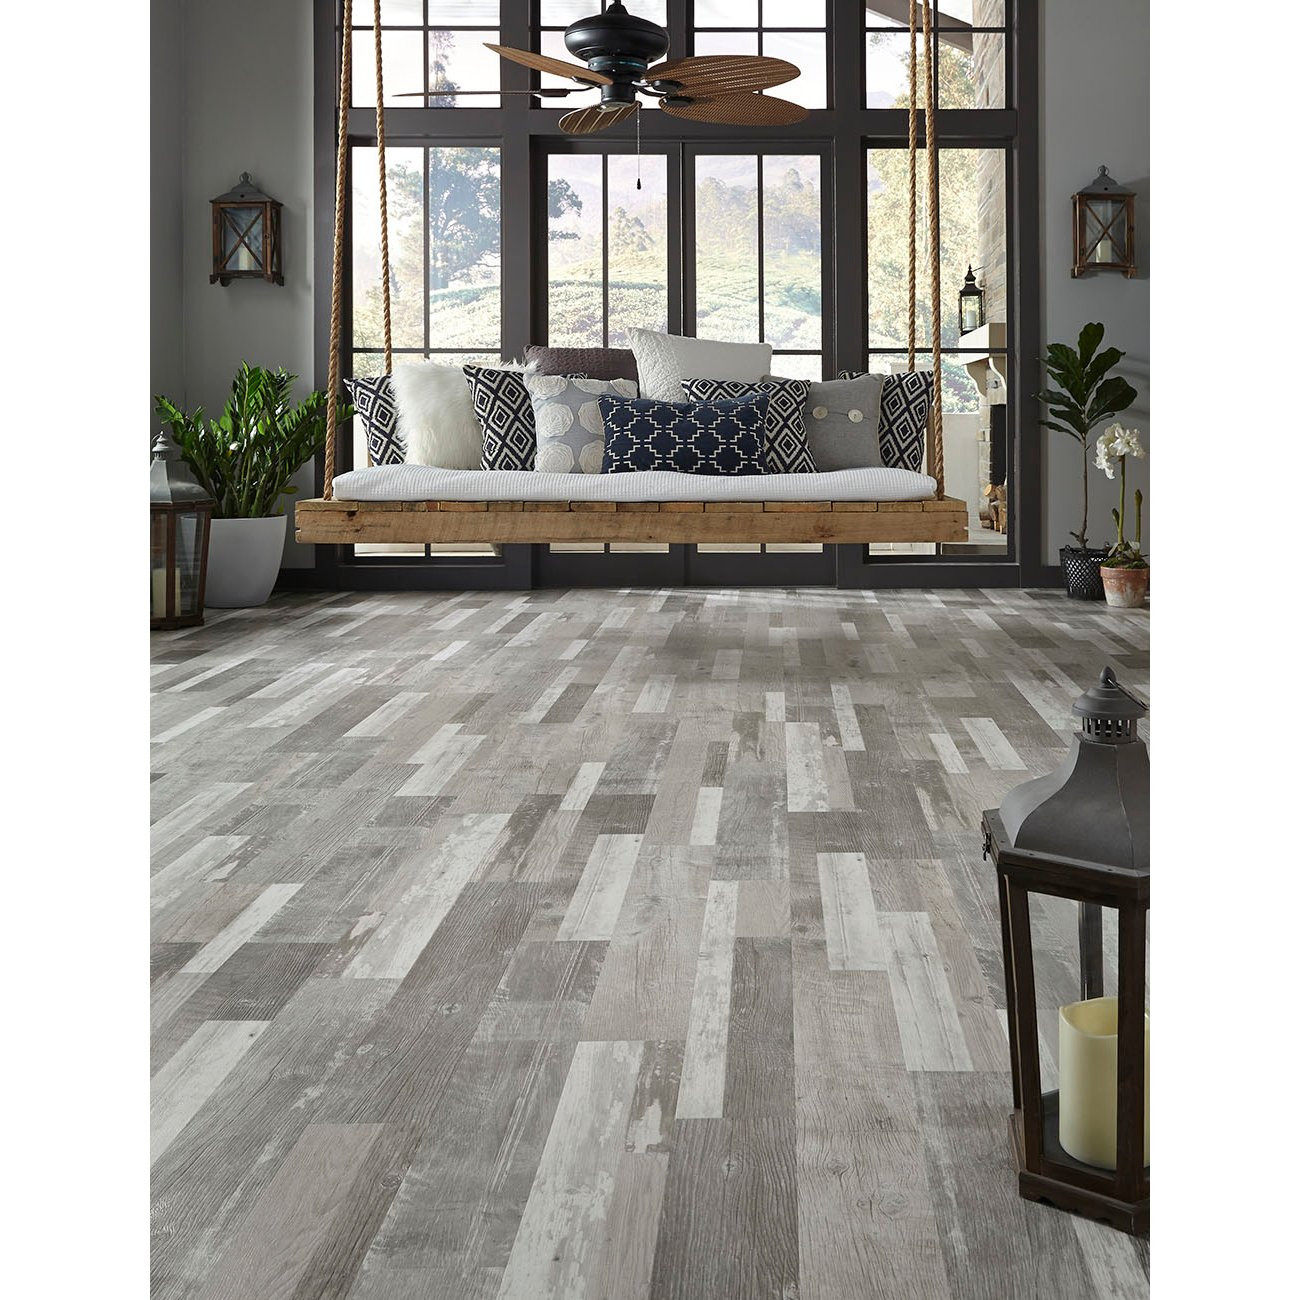 wood tile flooring vs hardwood of daltile season wood 6 in x 48 in porcelain floor tile autumn inside daltile season wood 6 in x 48 in porcelain floor tile autumn wood floorzz